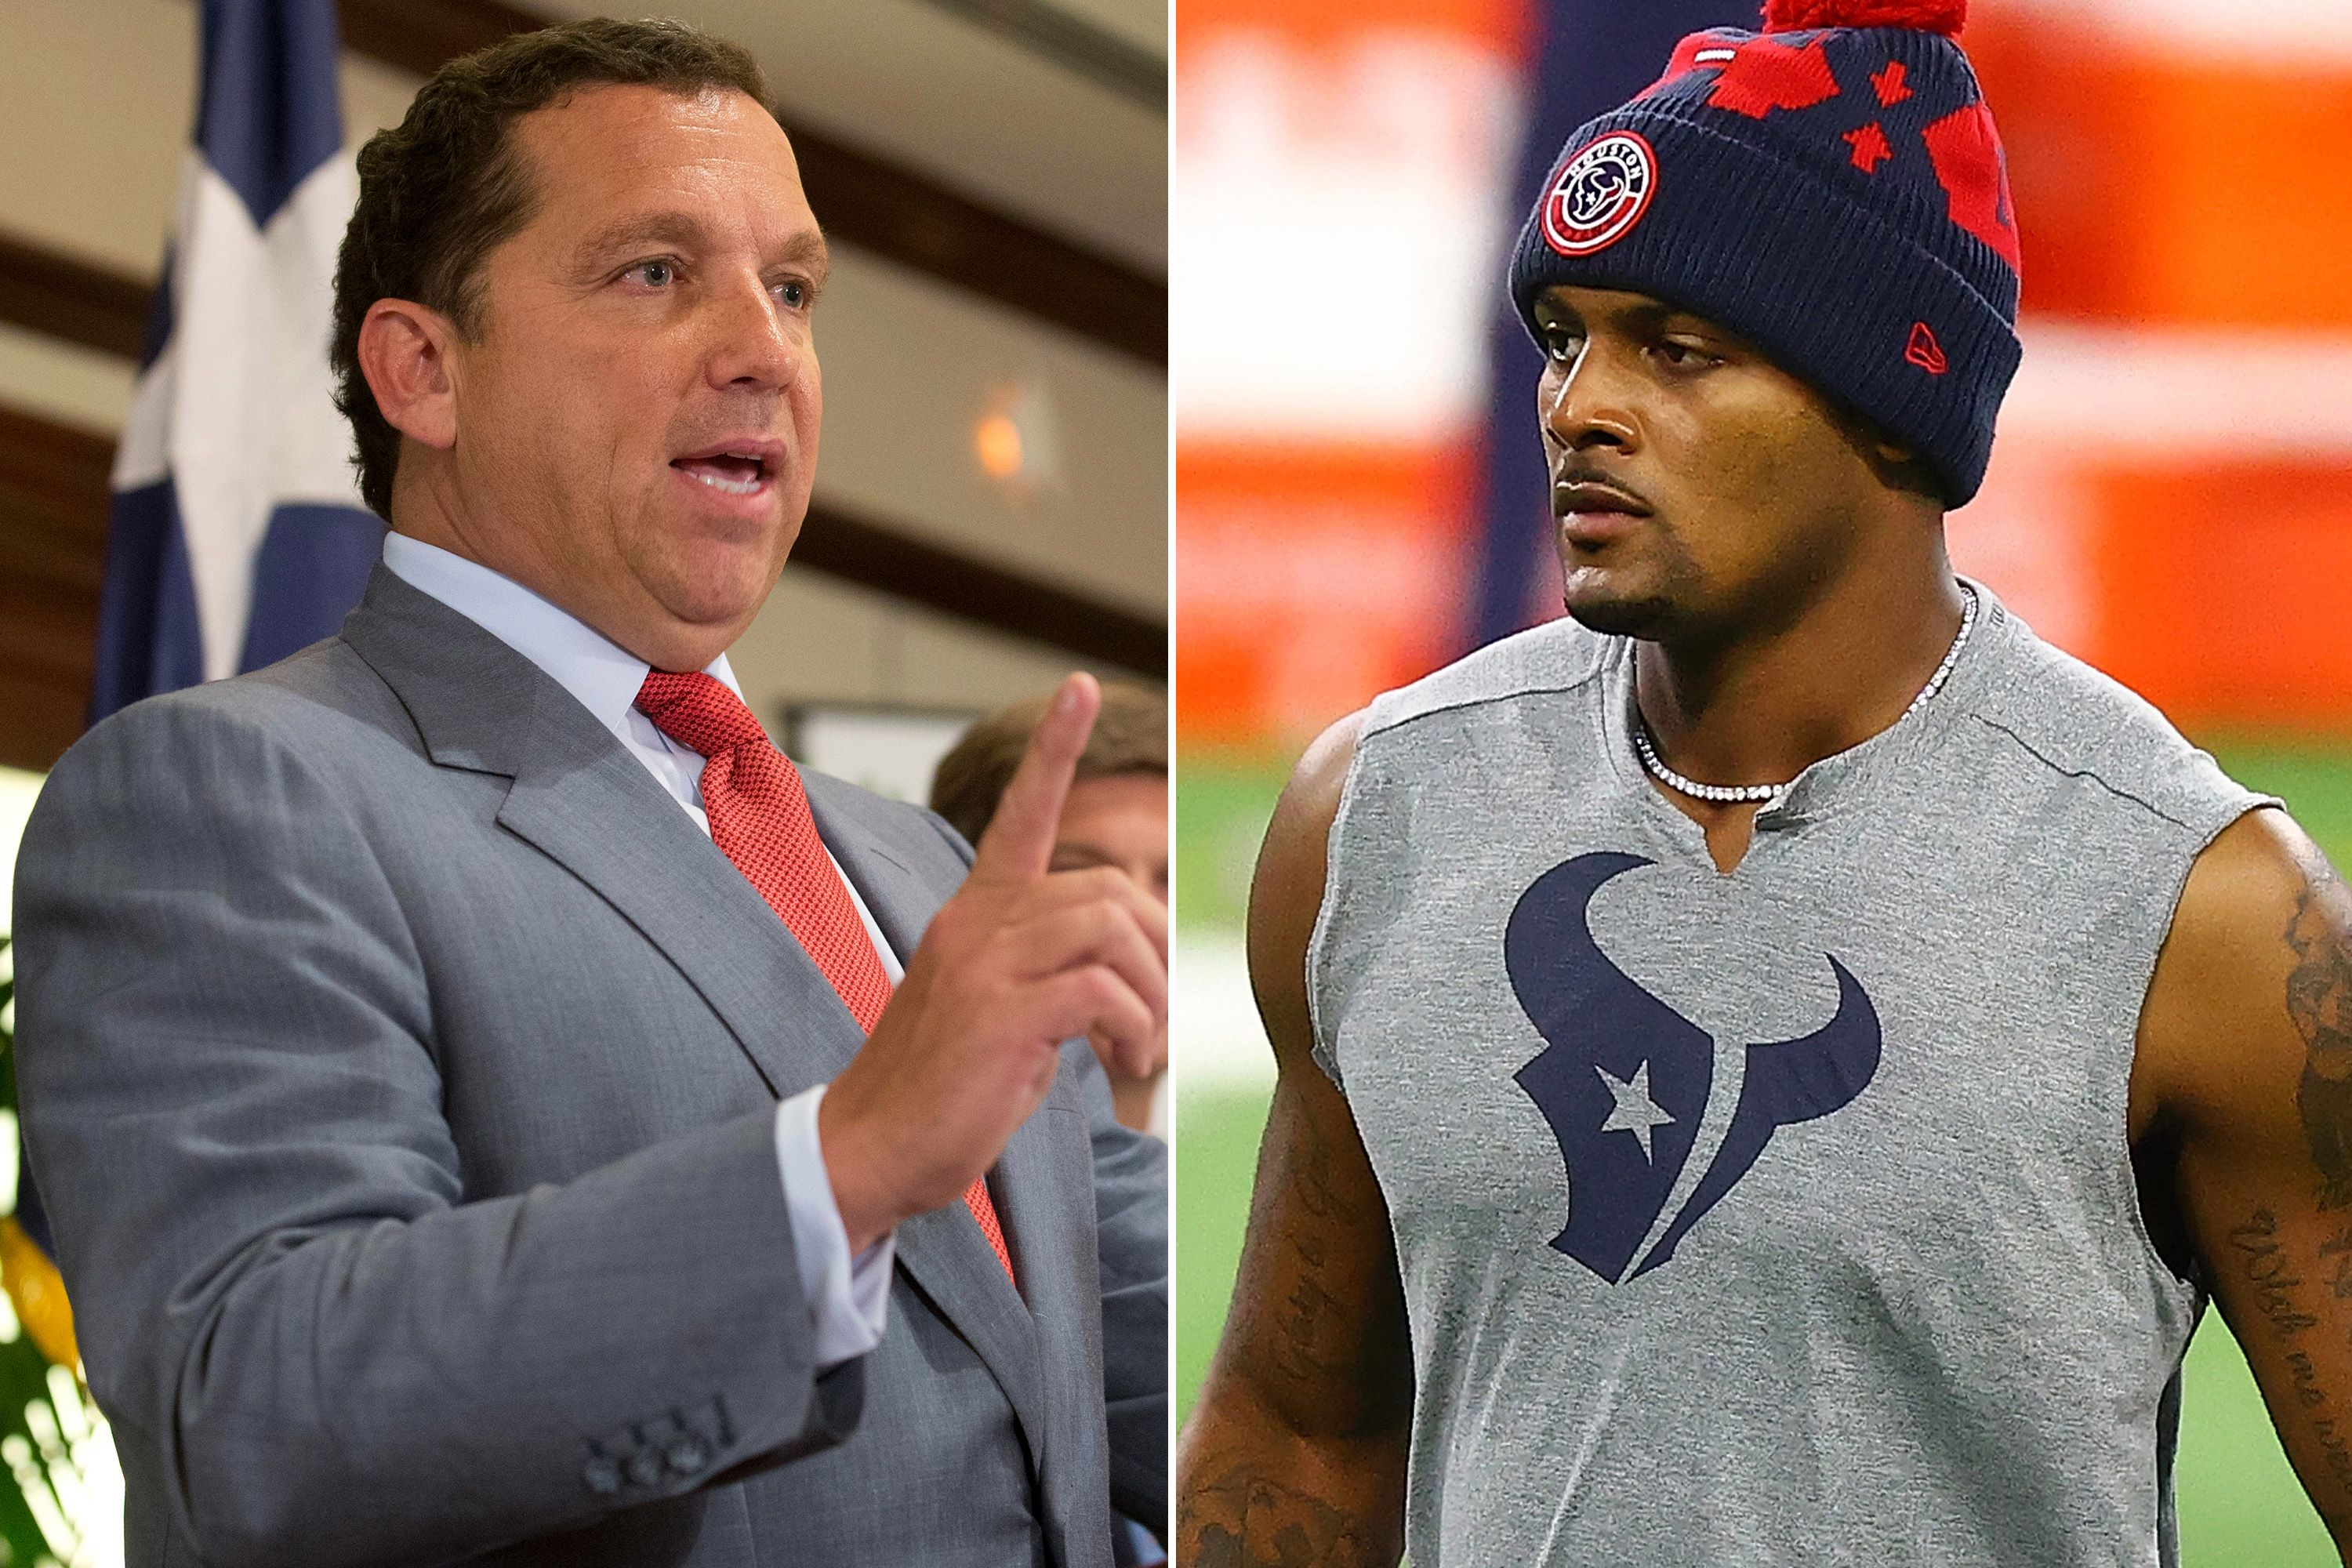 Tony Buzbee Asks Why Hasn't Deshaun Watson Denied Getting 150 Massages From IG Ladies, Being Naked in The Massages or That He Wanted Happy Endings